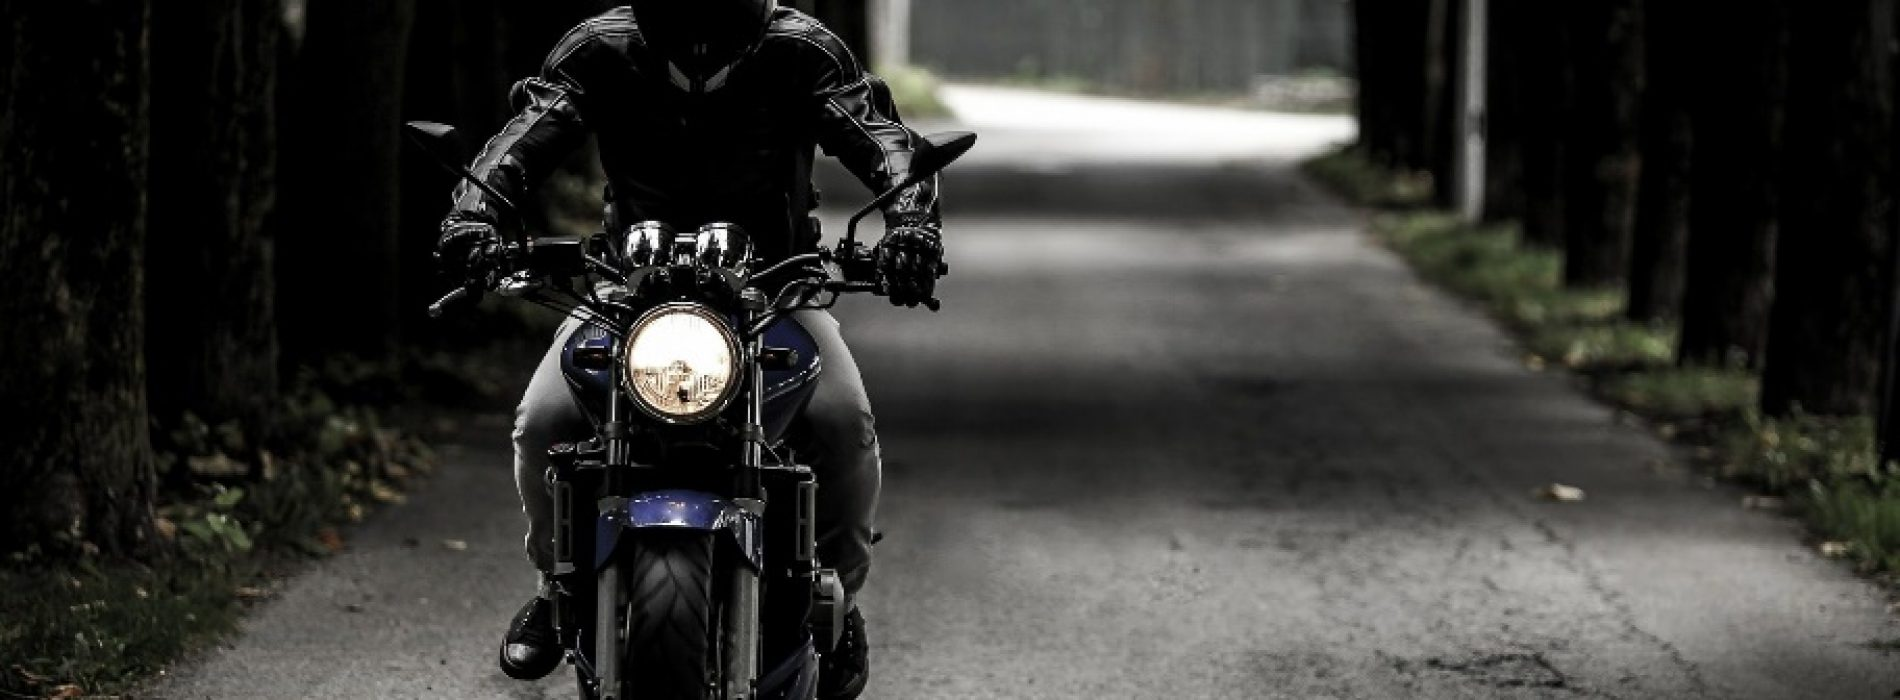 Motorcycle Maintenance 101: Tips & Tricks To Protect Your Ride